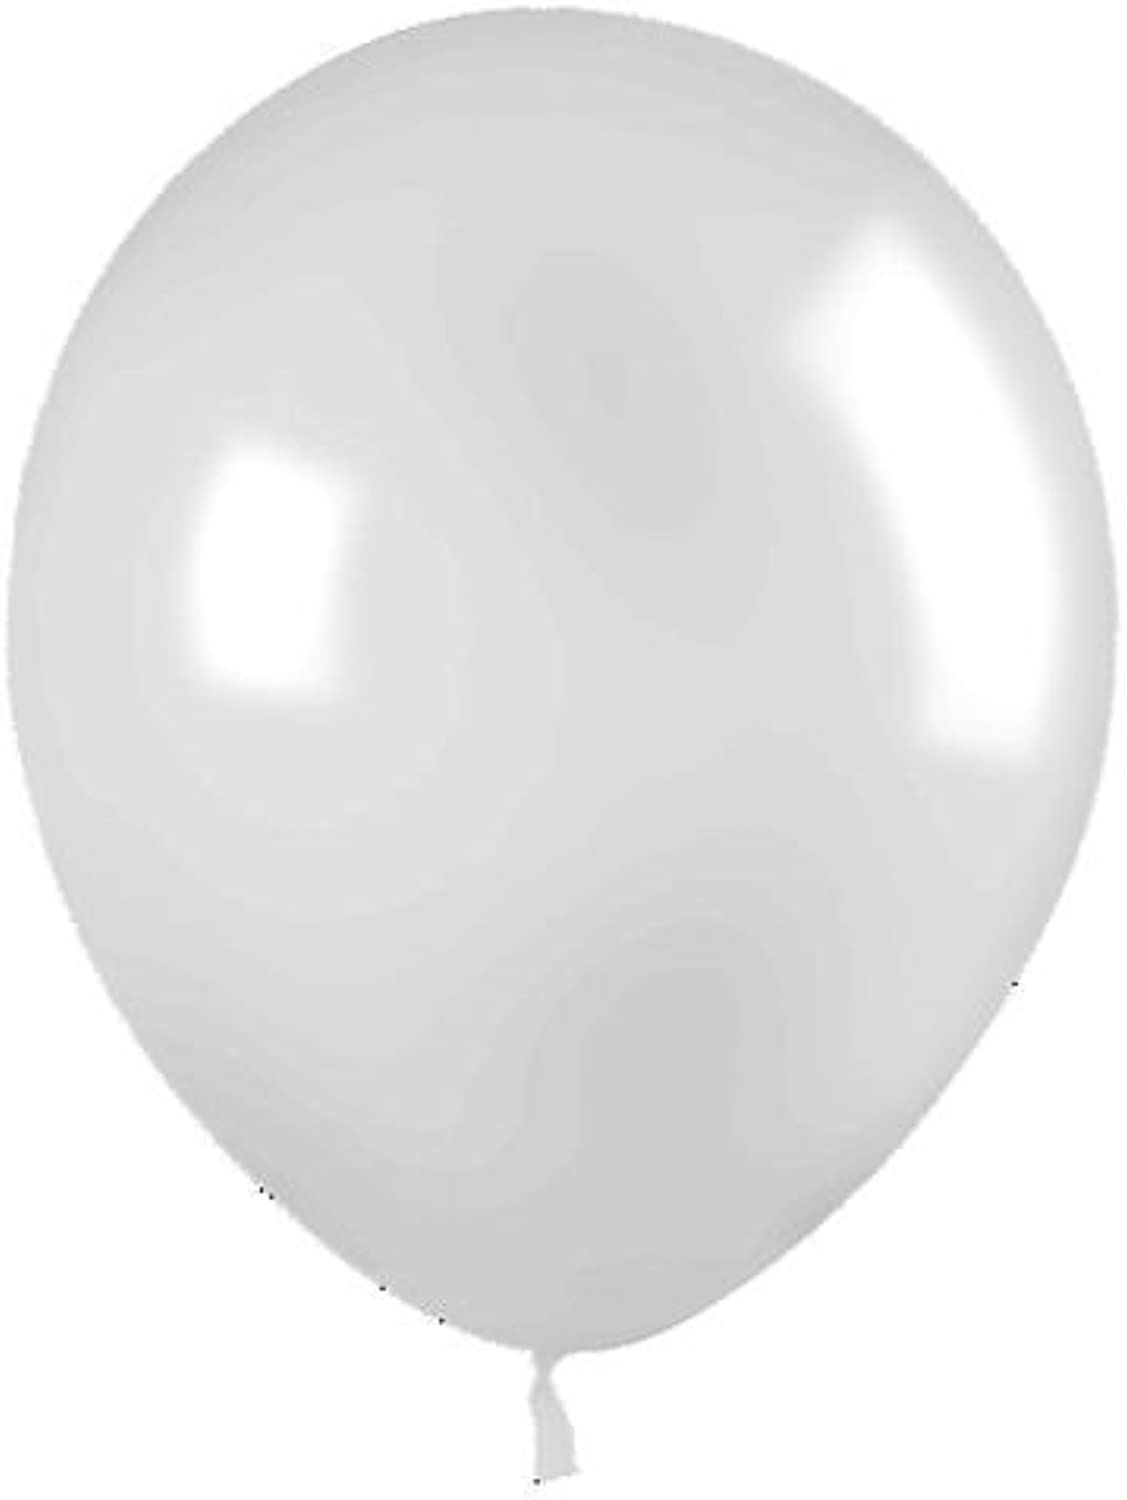 Balloons 11 White 100 Bag by Tuftex